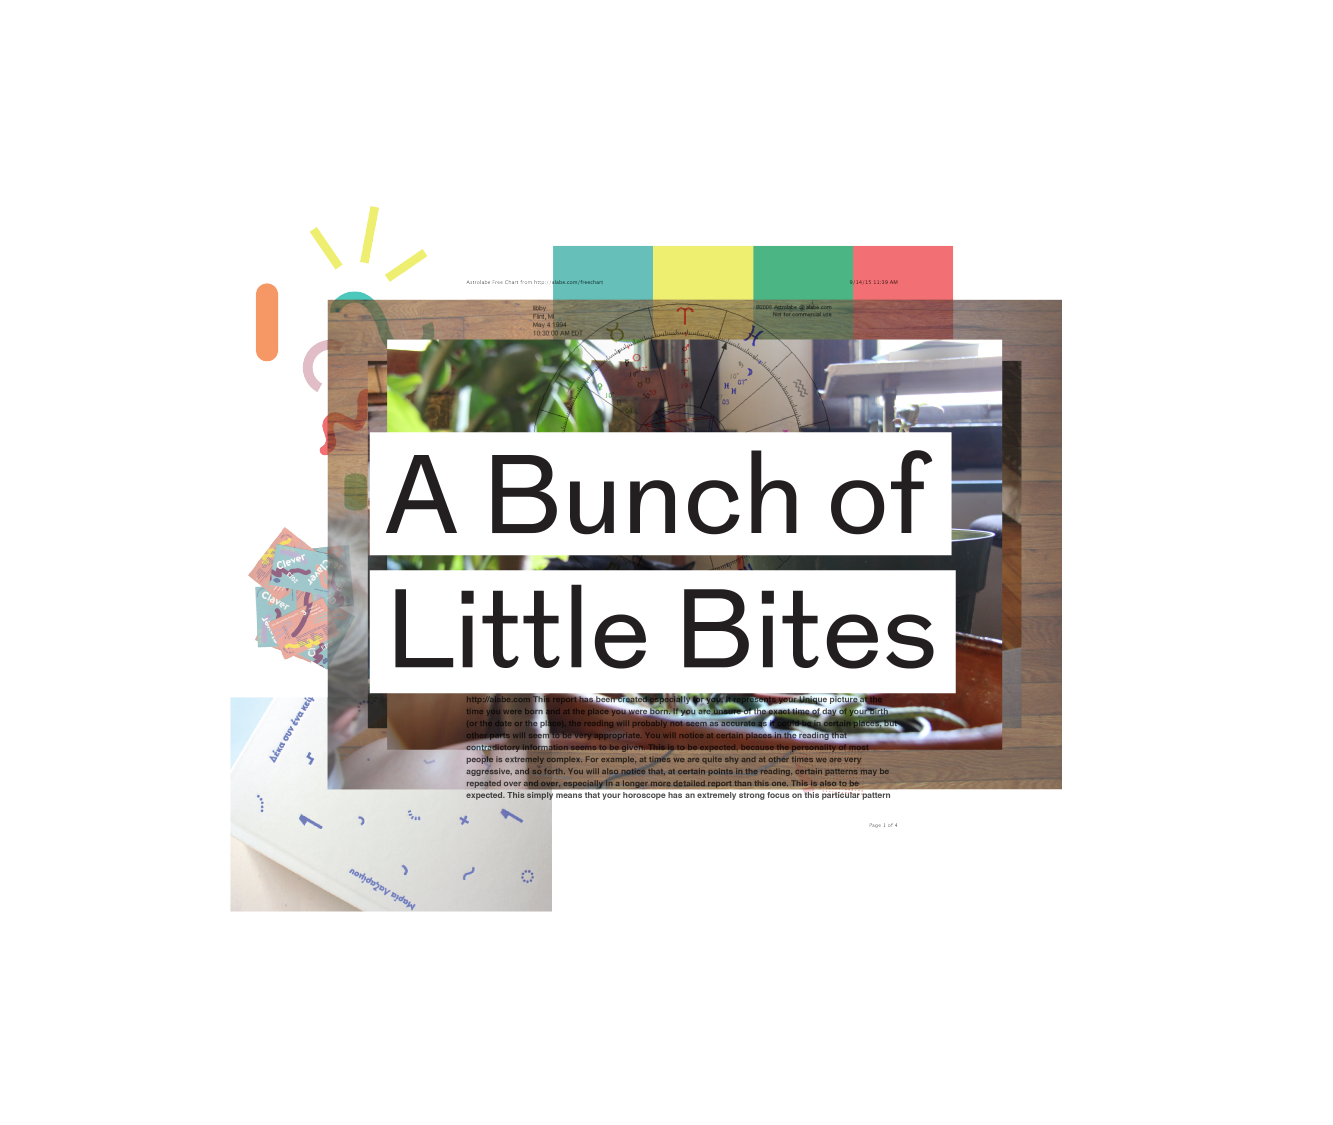 A Bunch of Little Bites